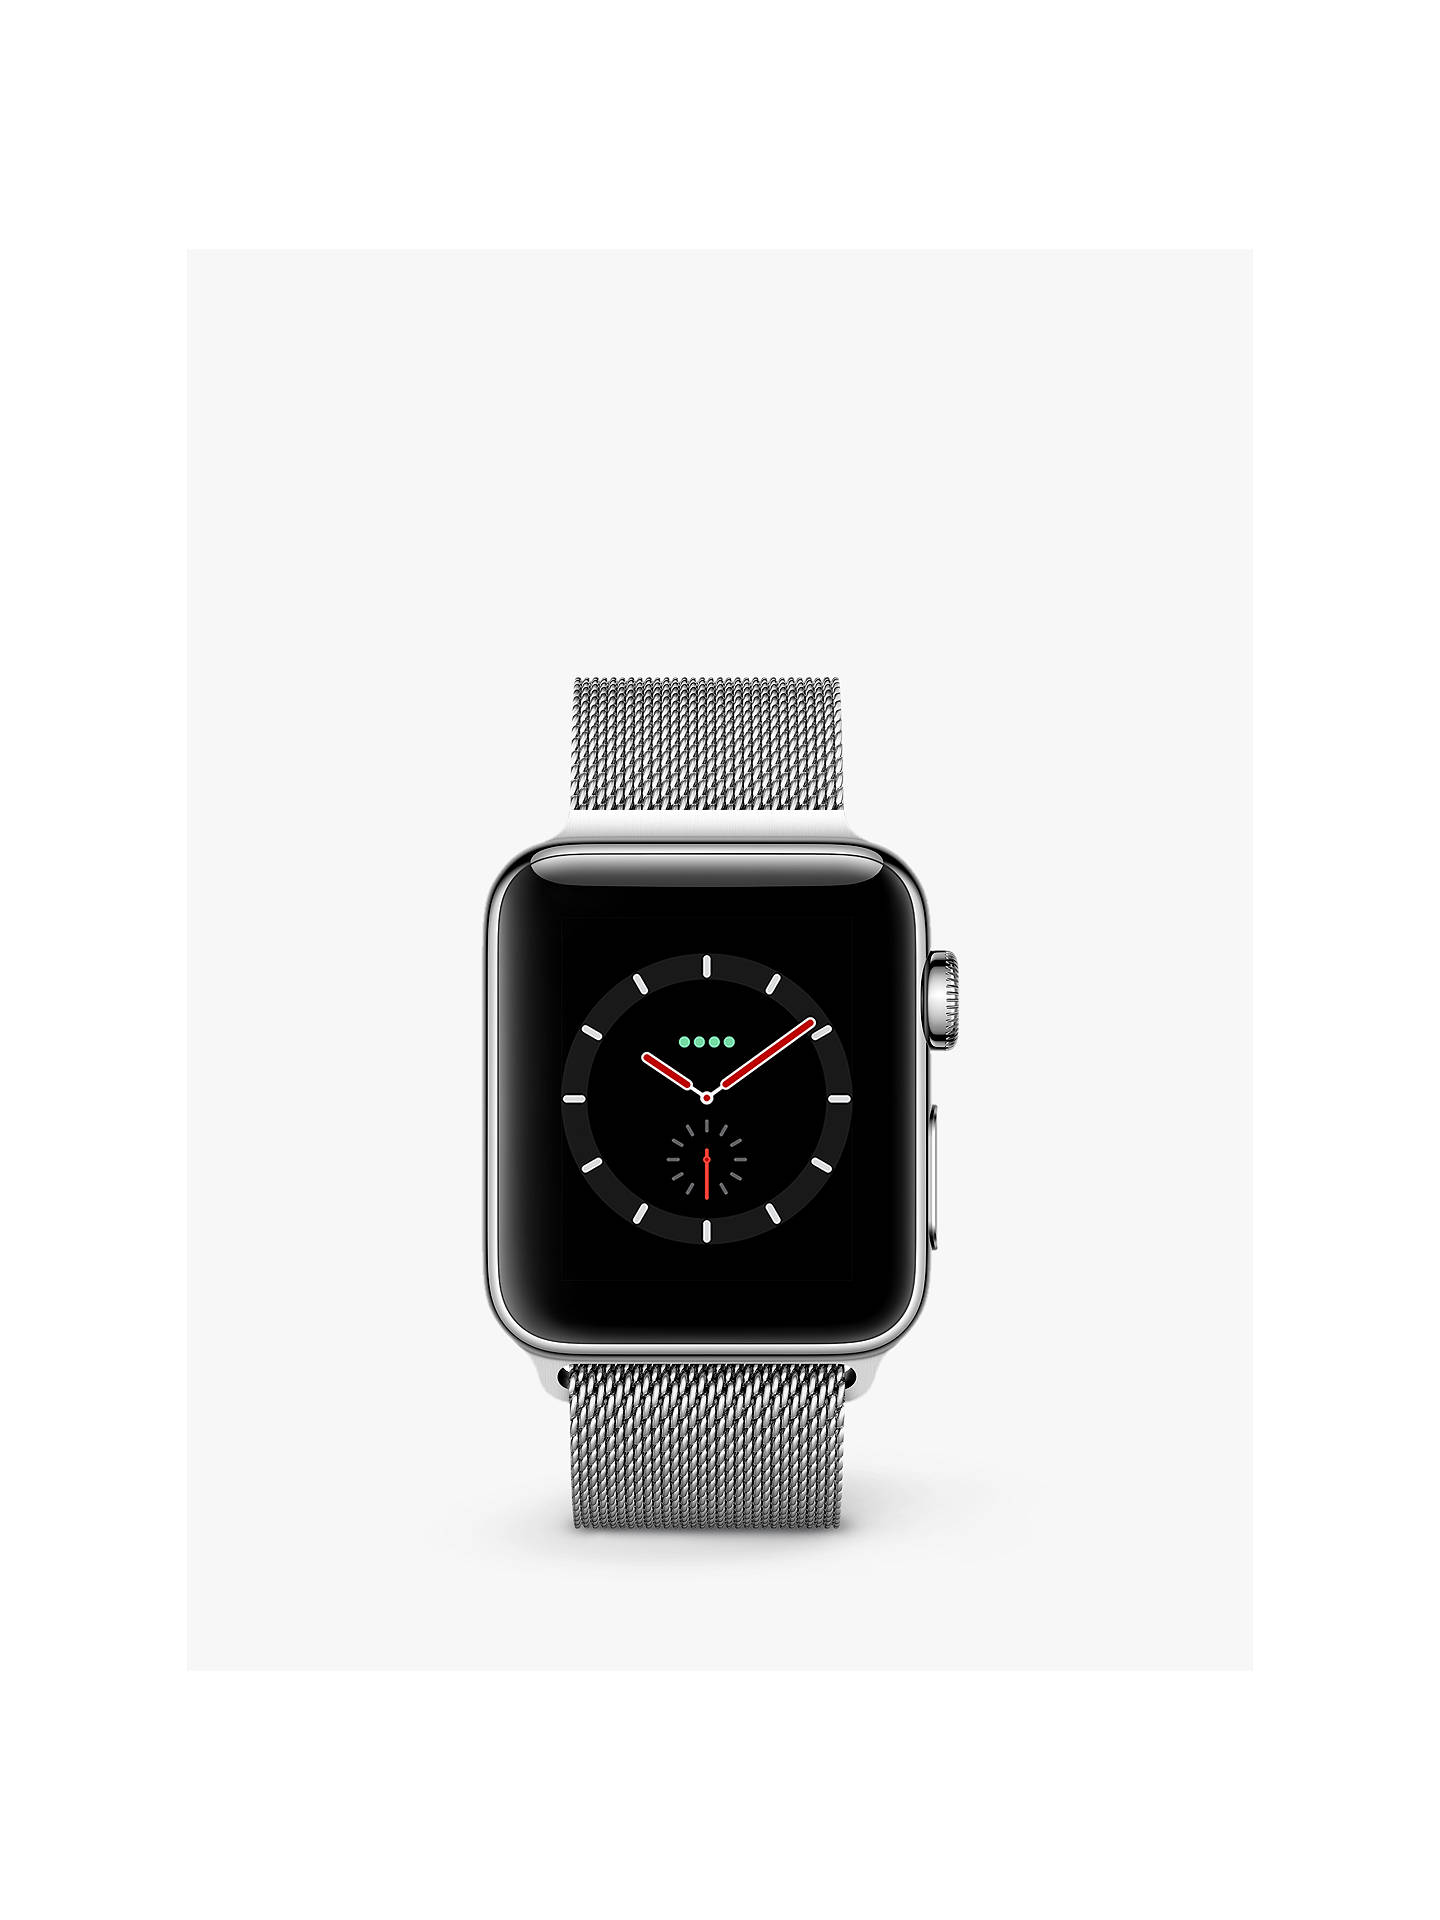 BuyApple Watch Series 3, GPS and Cellular, 38mm Stainless Steel Case with Milanese Loop, Silver Online at johnlewis.com